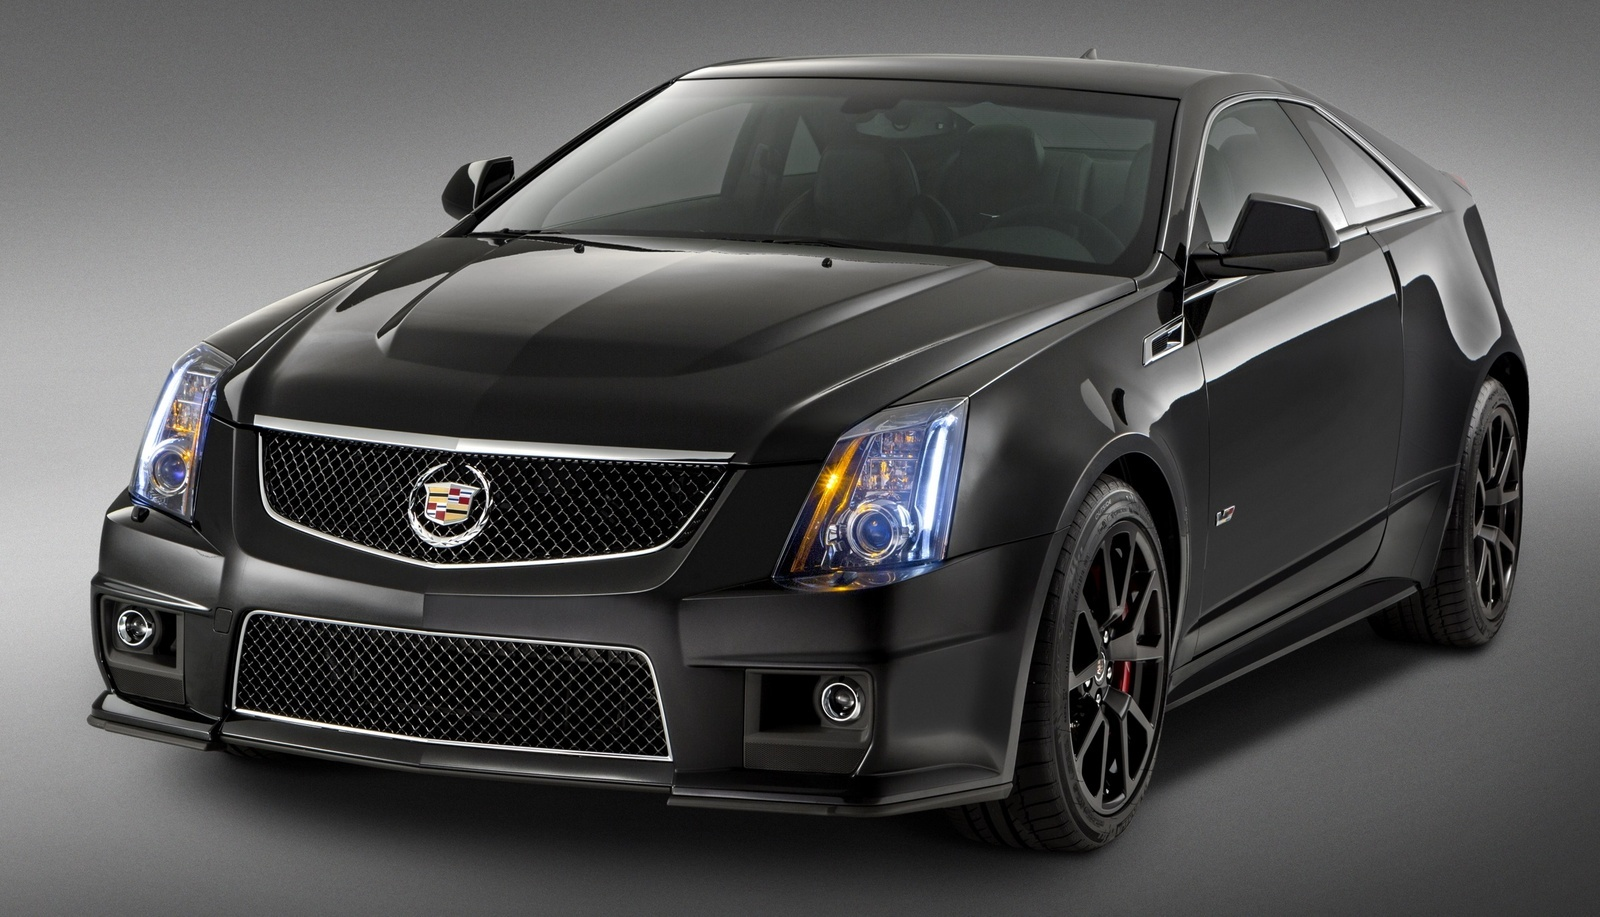 models ats image performance cts v fastestlaps coupe laptimes price of com data cadillac specs